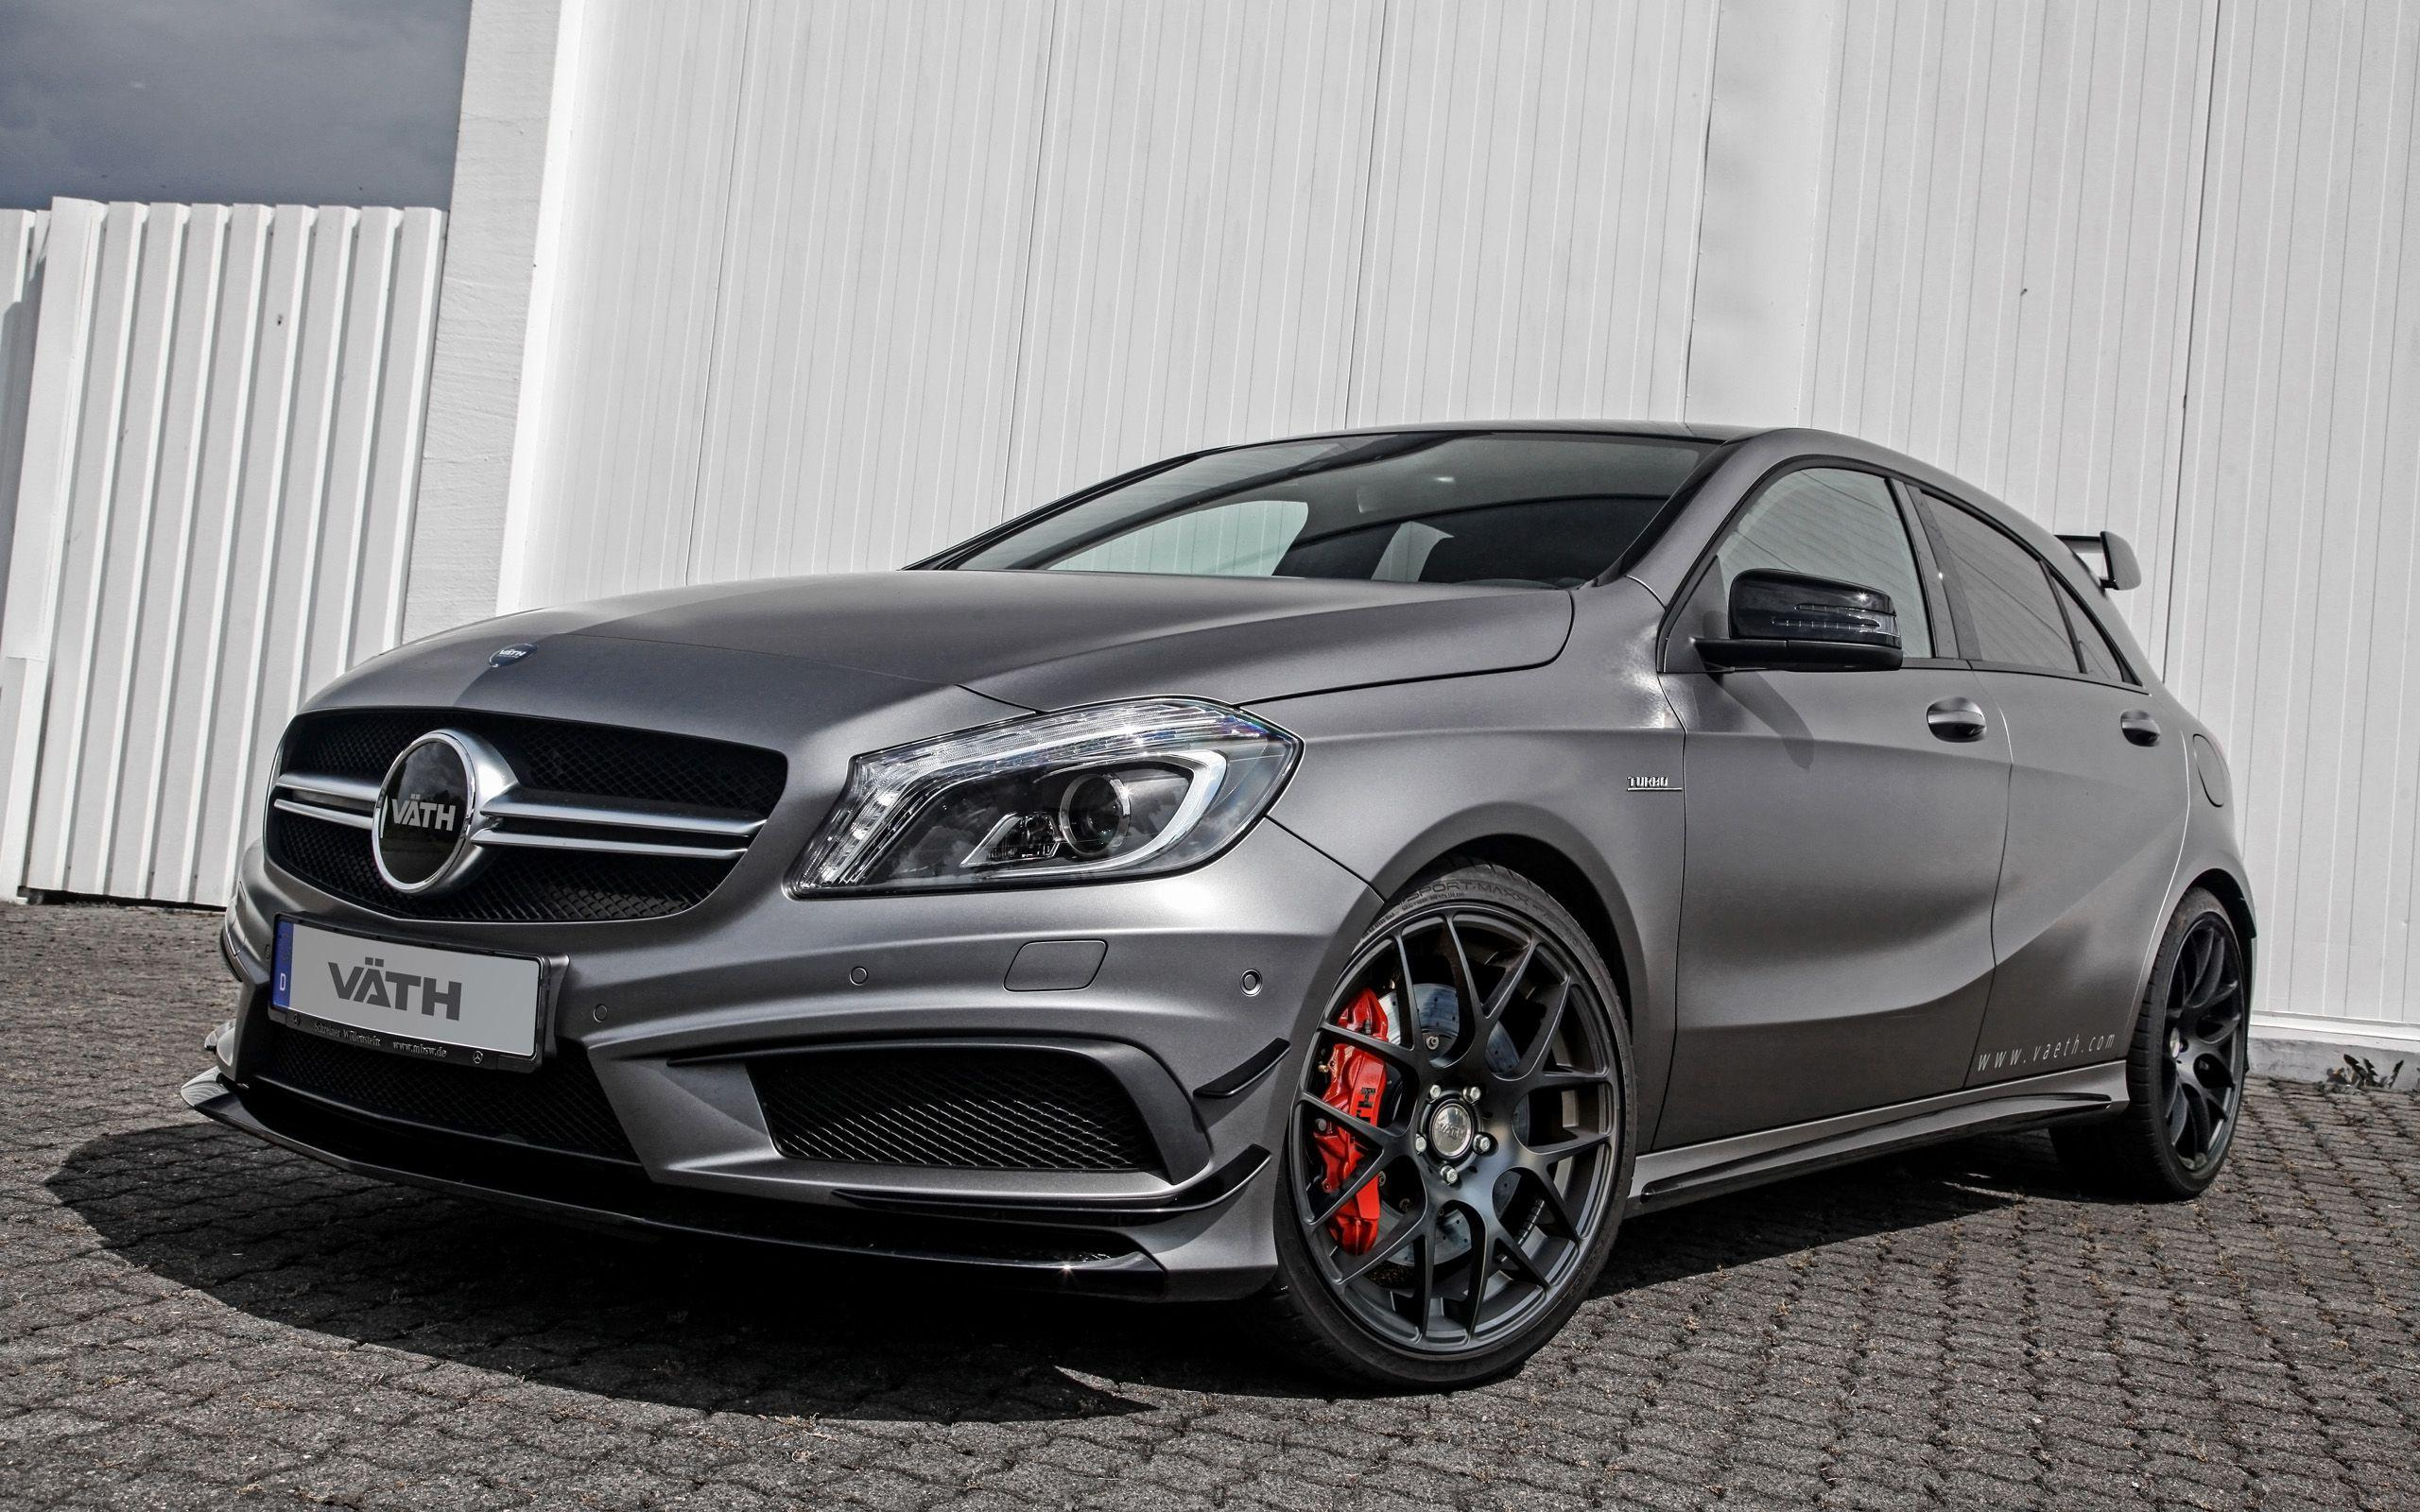 2014 Vaeth Mercedes Benz A45 AMG Wallpapers